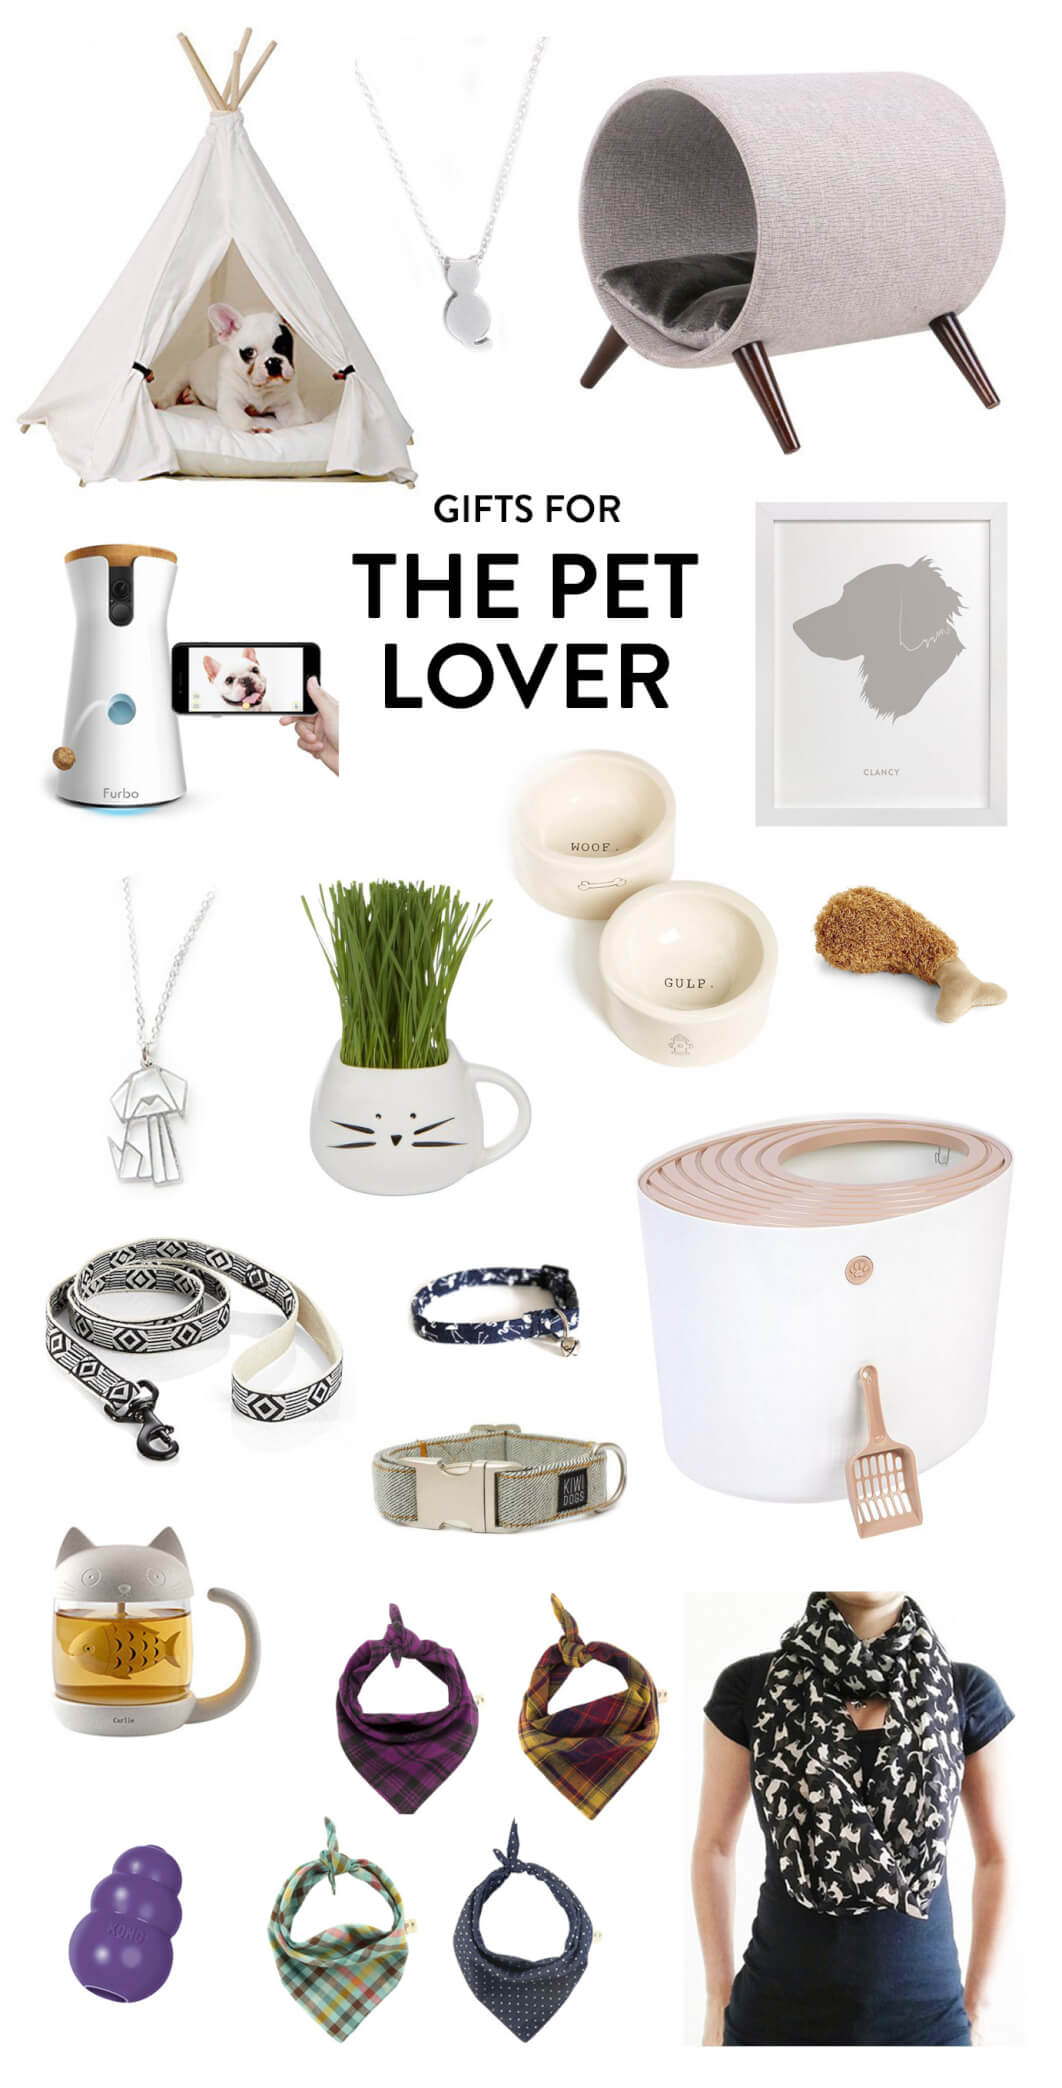 Perfect for the cat and dog lovers in your life! Holiday gifting ideas include everything from a pet teepee to a cat necklace, cat bed, customizable art, dog bowls and toys, litter box, scarf, bandanas, tea mug, leash, and treat dispenser. | The Pet Lover Gift Guide | Gimme Some Oven Holidays 2017